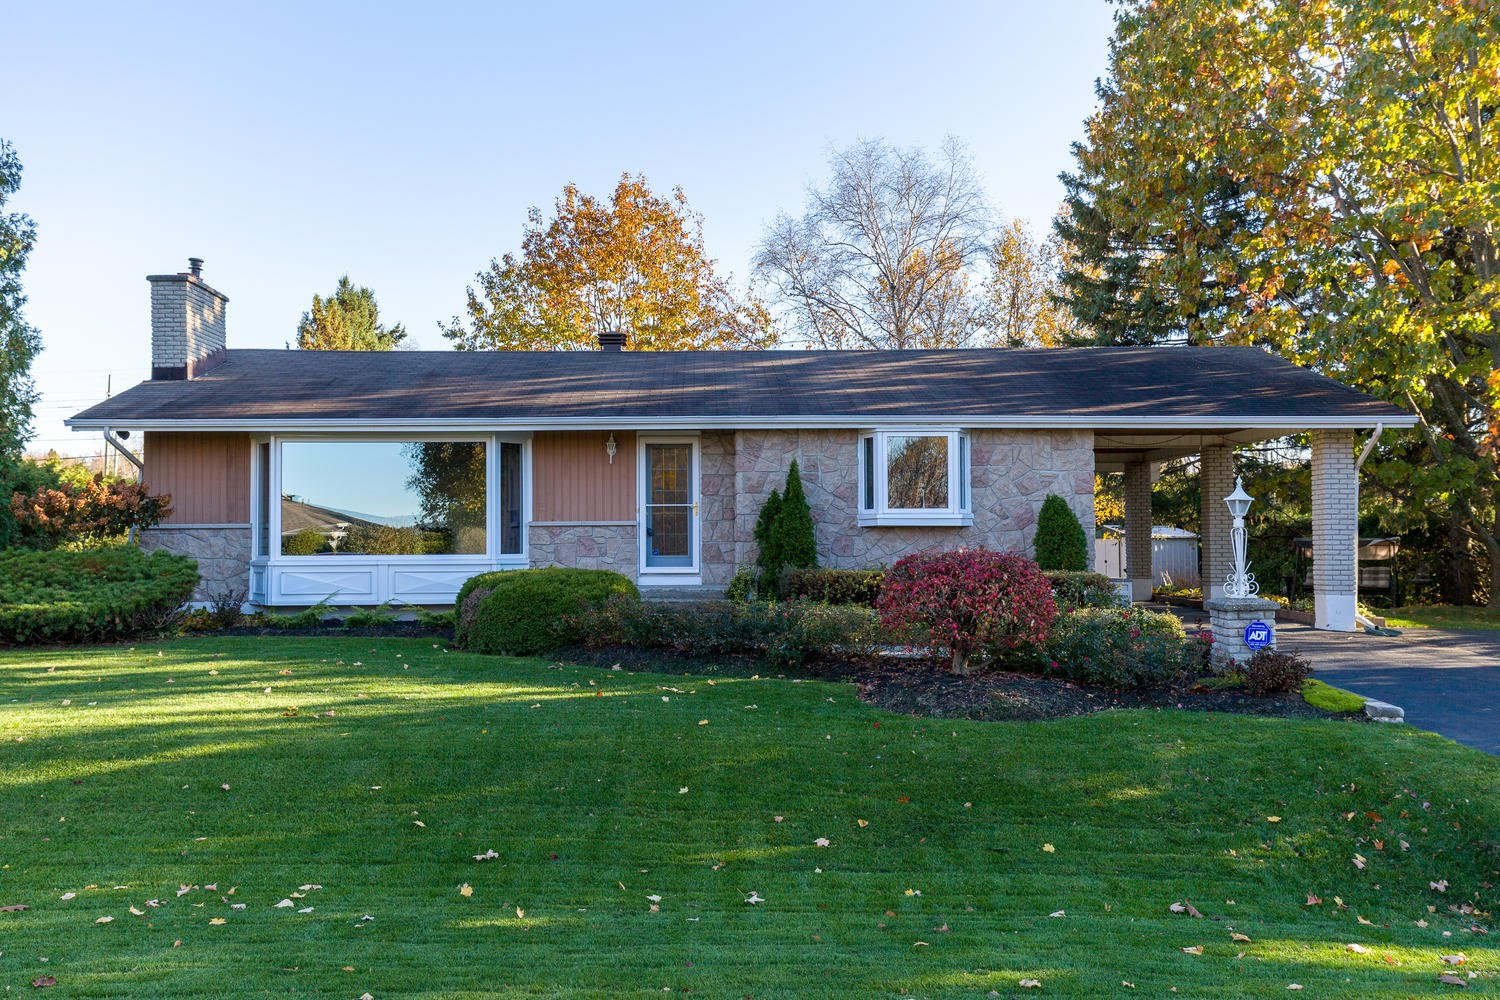 Inspirational Cumberland Bungalow For Sale - 1572 Bella Vista Dr - The Pilon Group pertaining to Review Bungalow Homes For Sale